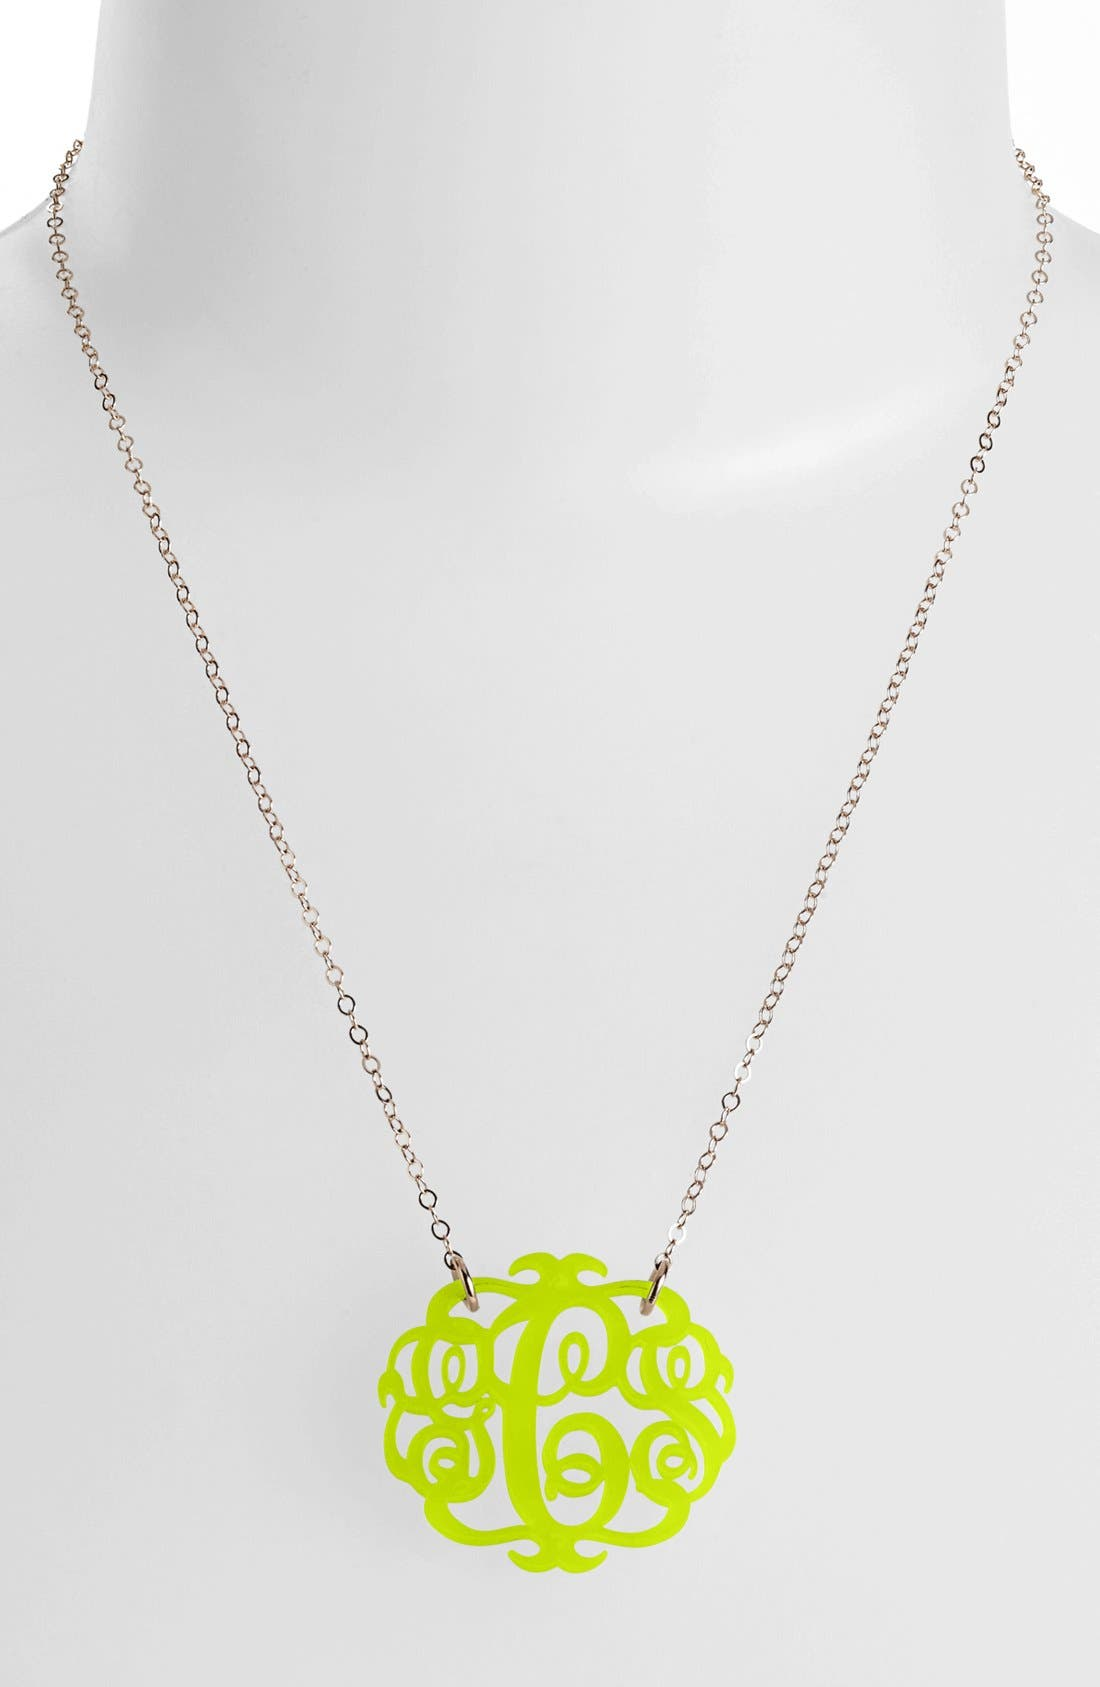 Medium Oval Personalized Monogram Pendant Necklace,                         Main,                         color, Lime/ Gold